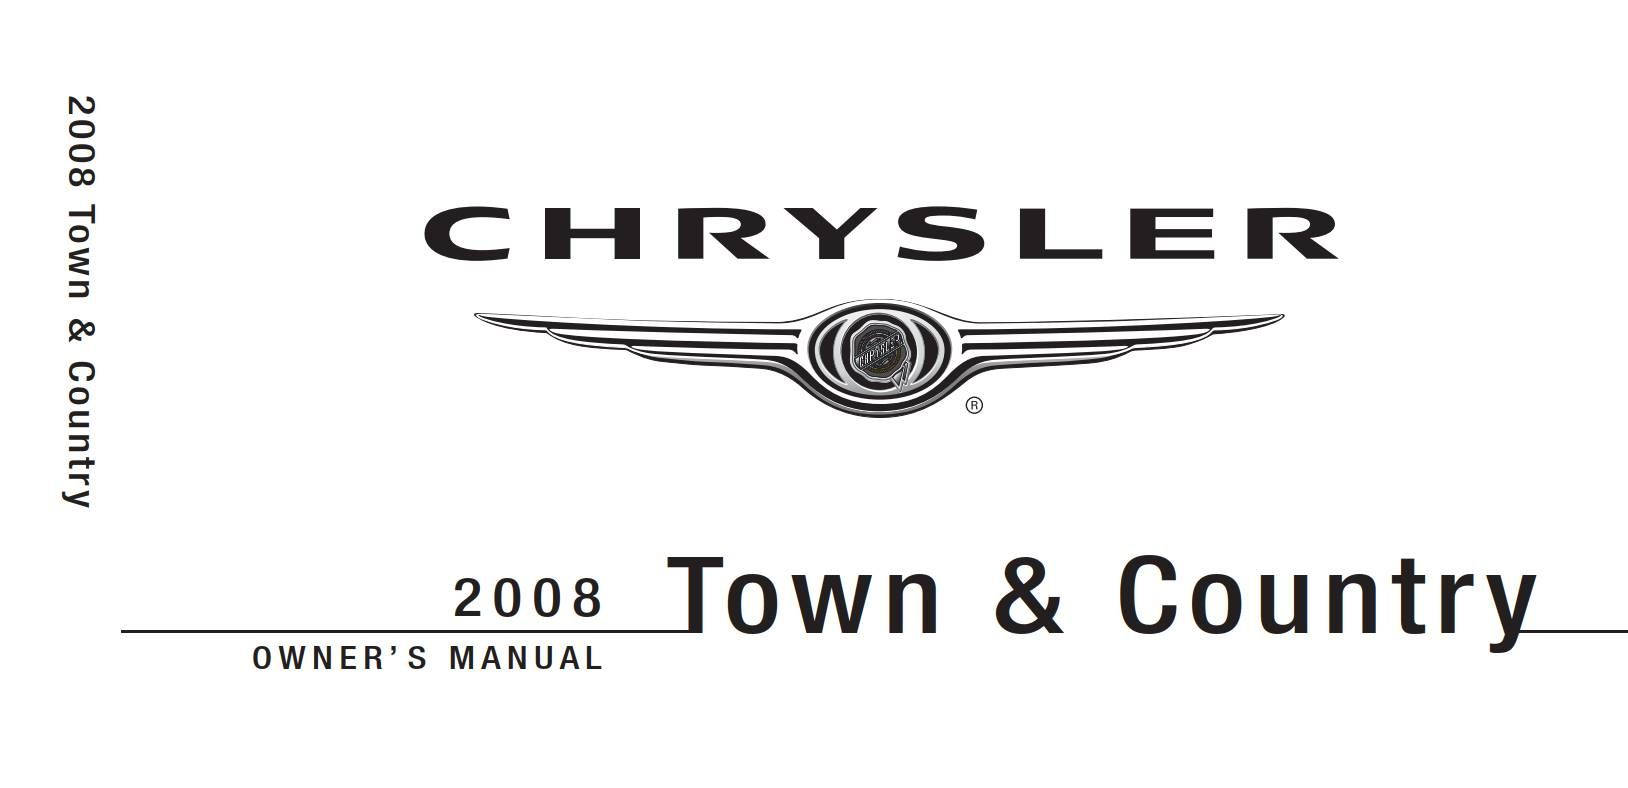 Chrysler Town And Country 2008 Owner's Manual has been